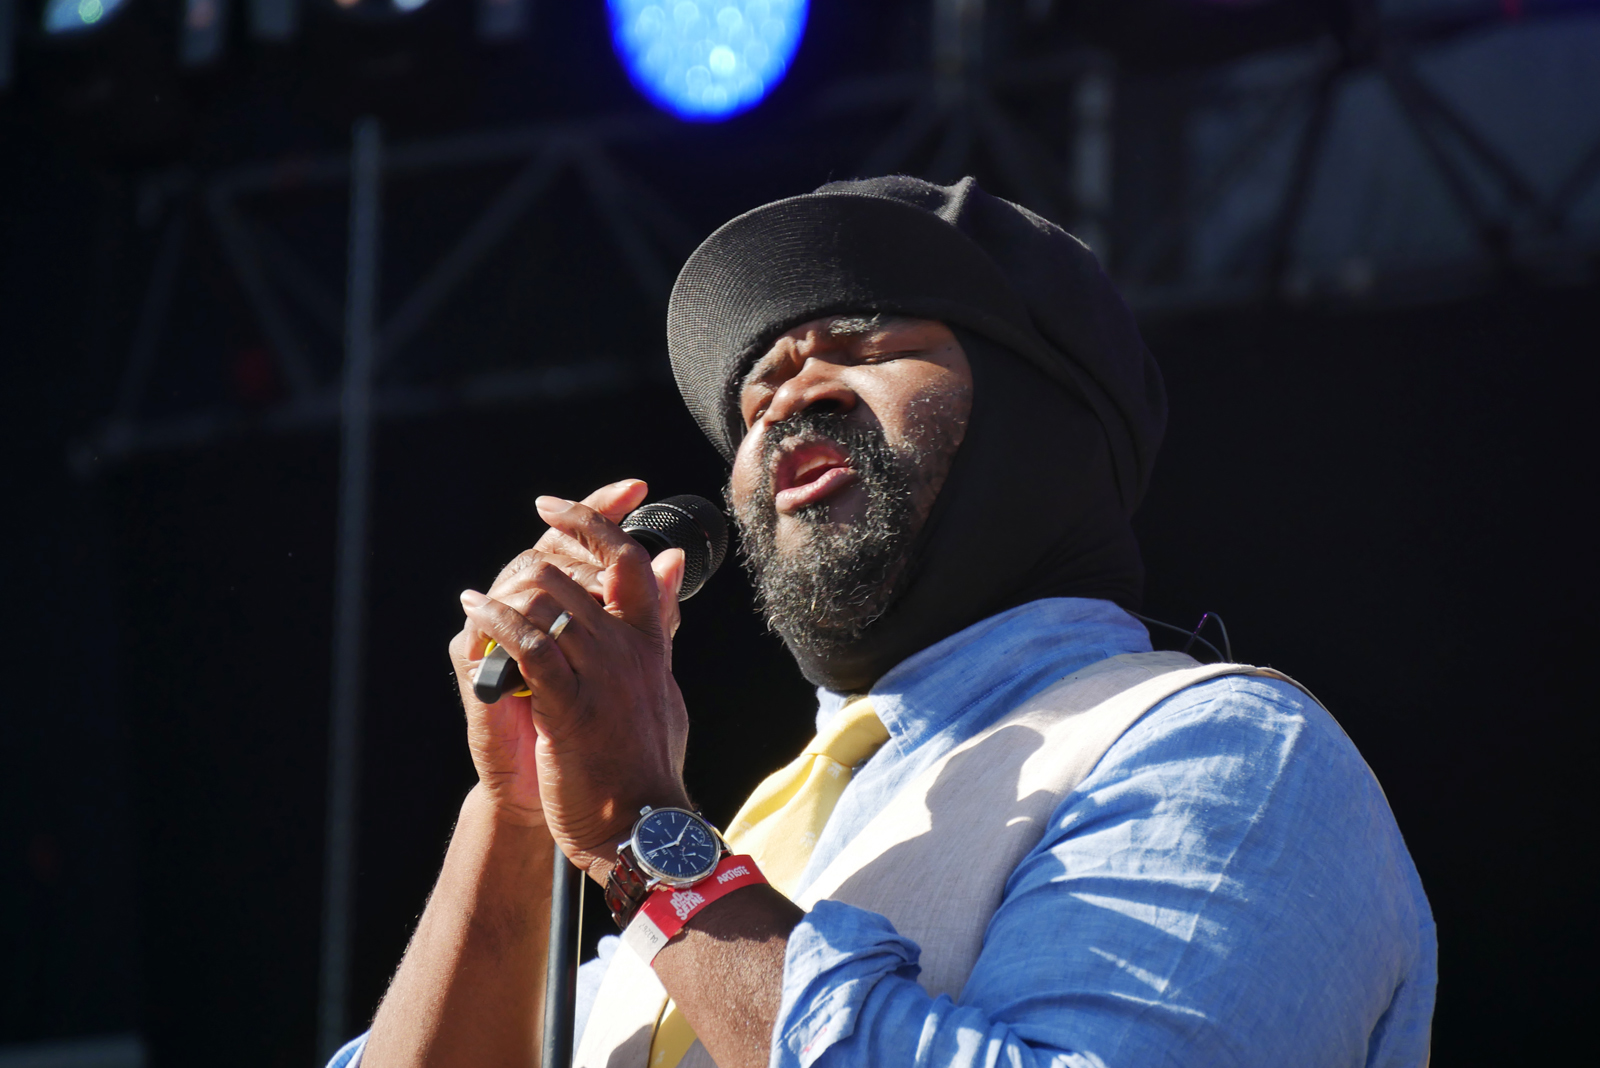 Gregory Porter live concert Rock en Seine 2016 festival Paris stage photo usofparis blog